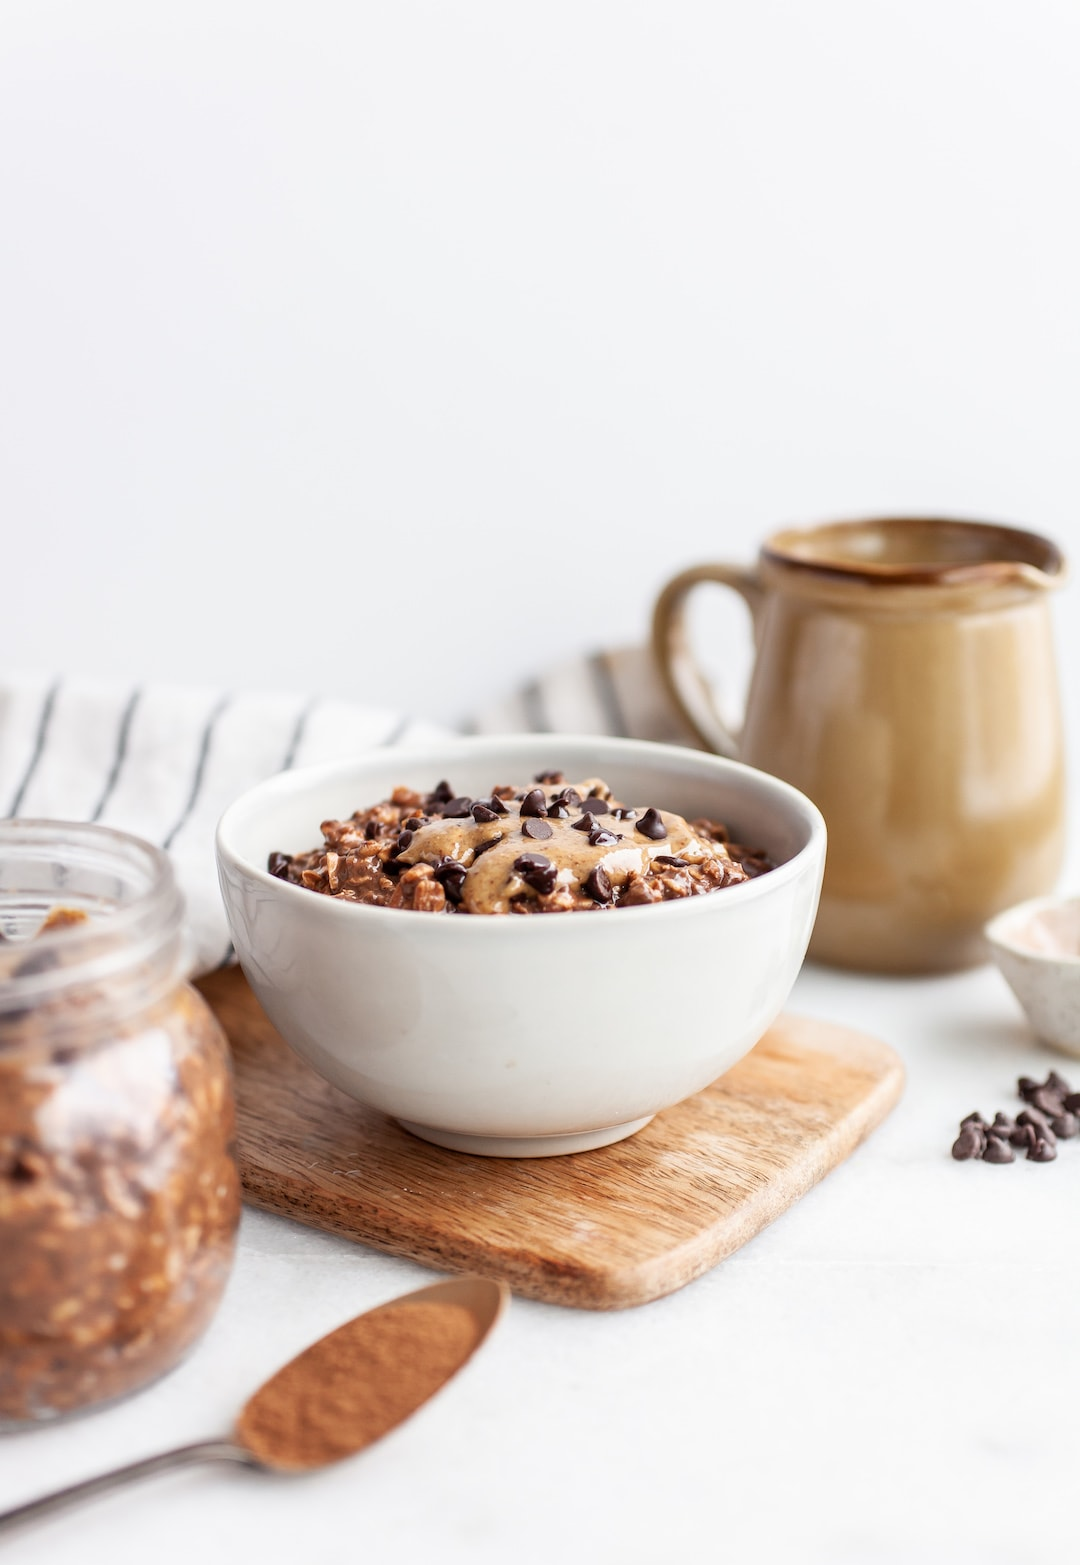 Healthy Chocolate Overnight Oats in a white bowl on a wood tray